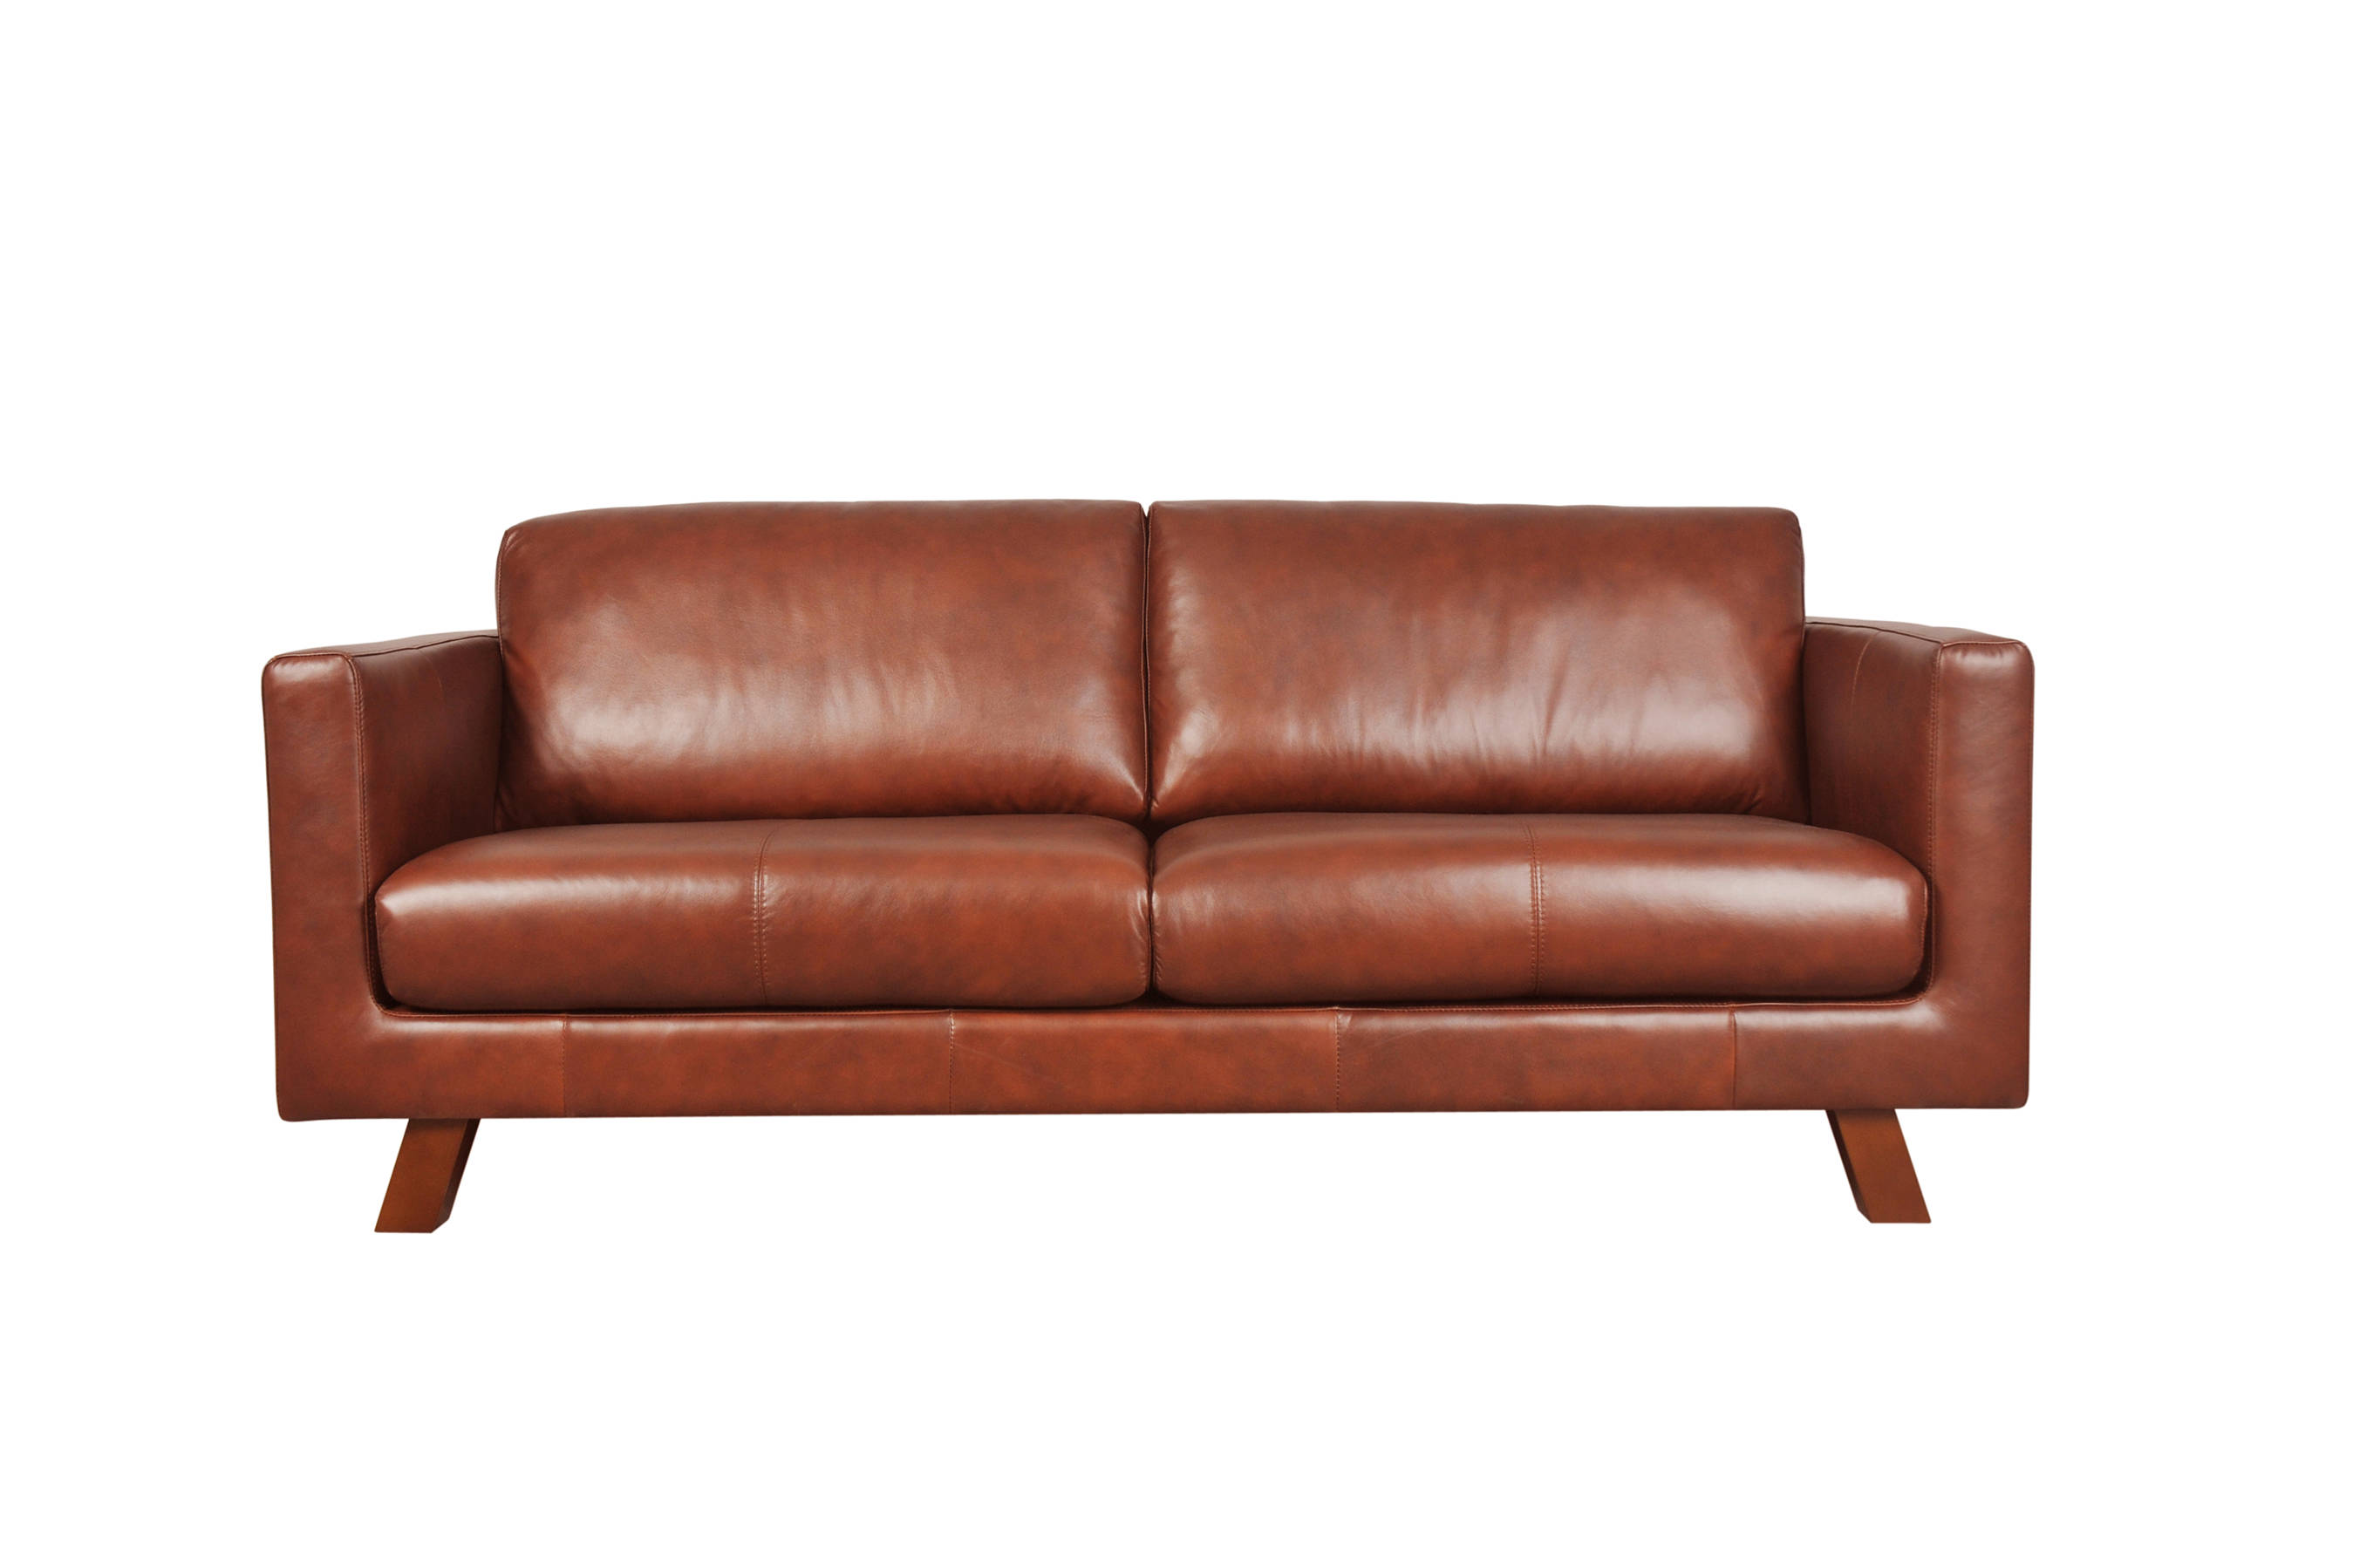 A Sofa That Your Living Room Will Love